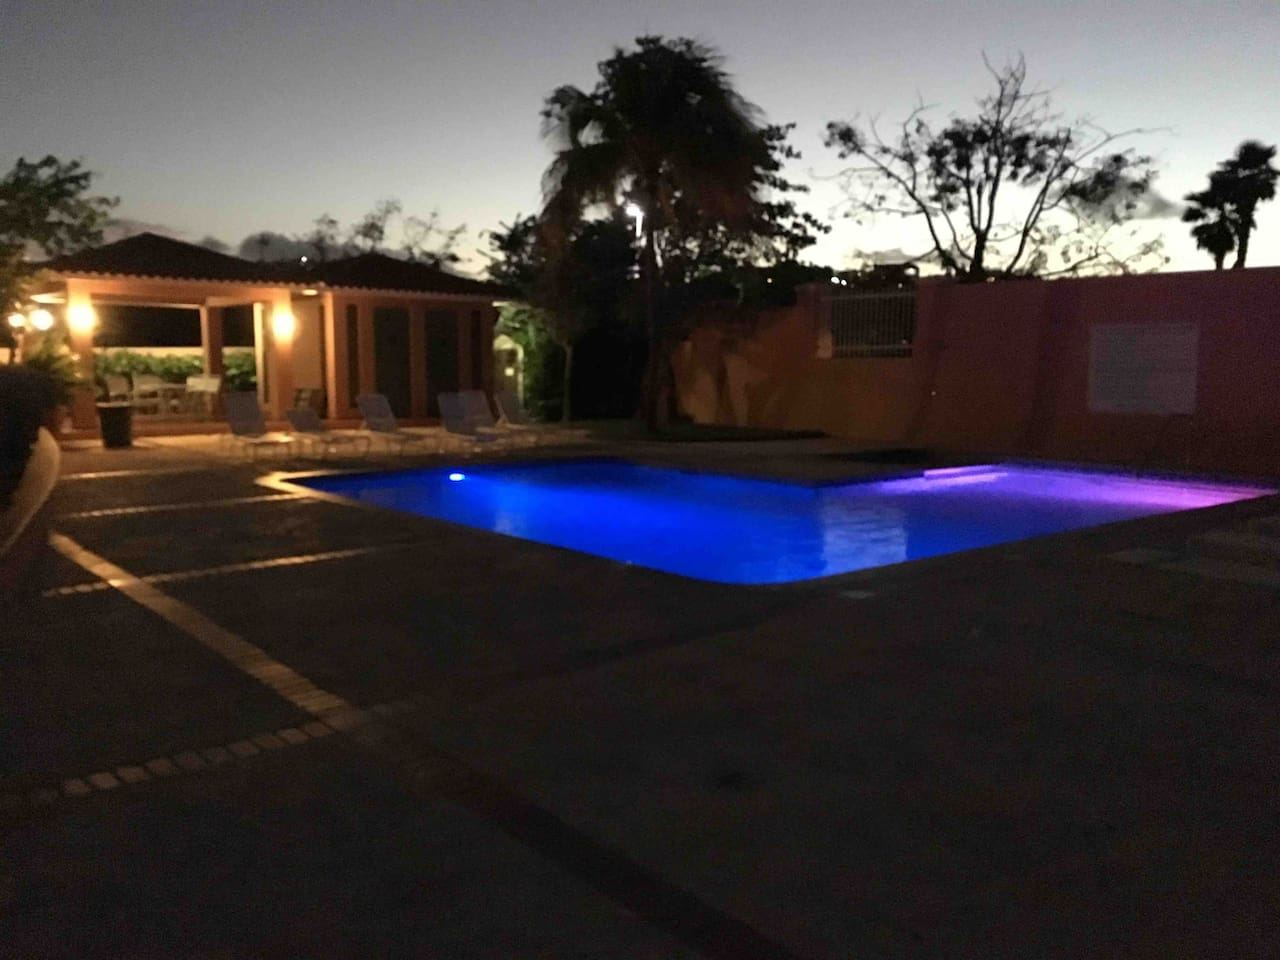 The pool at sundown with the magnificent color changing lights.